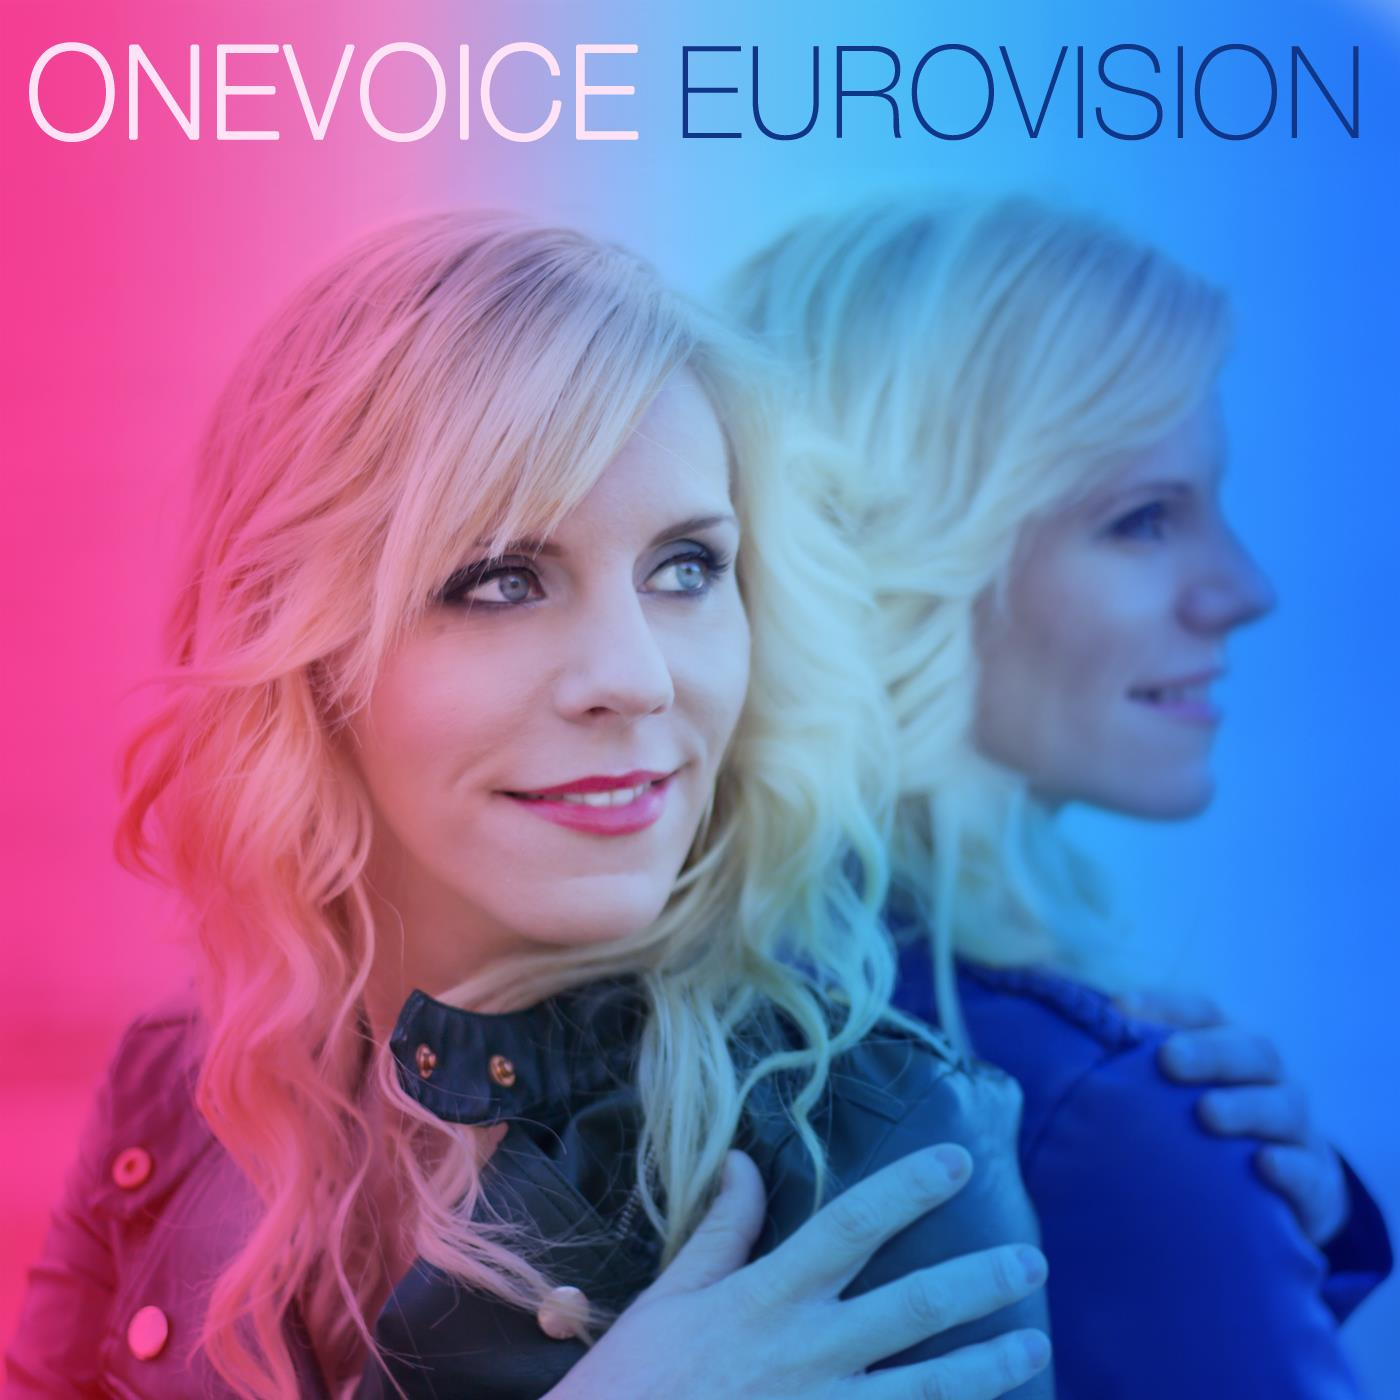 OneVoice Eurovision